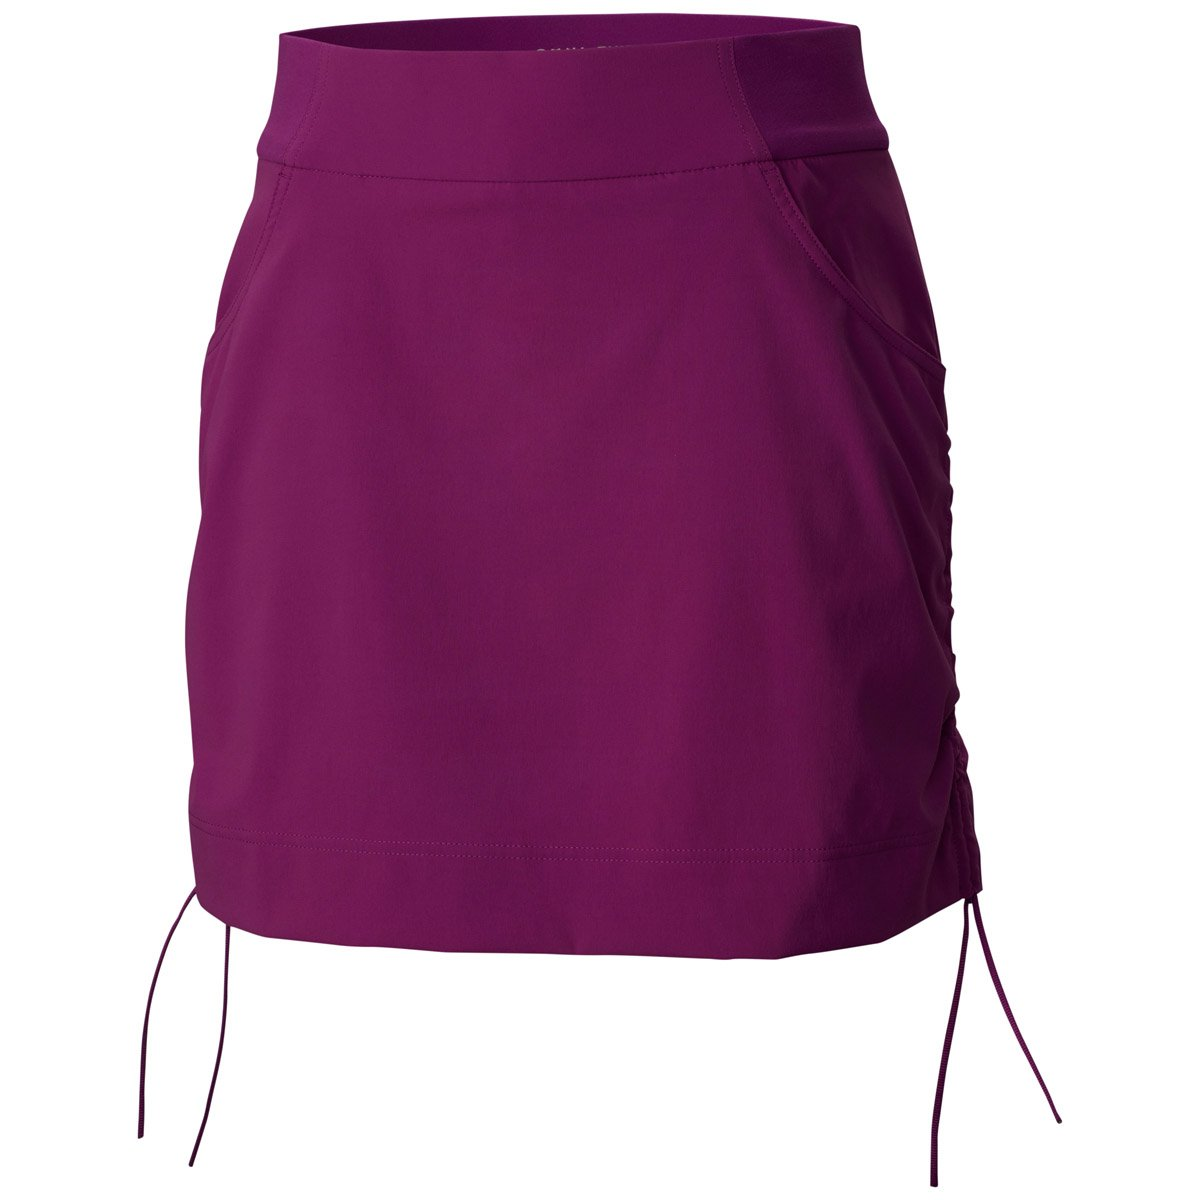 Intense purple Columbia Women's Anytime Casual Skort, Water & Stain Resistant